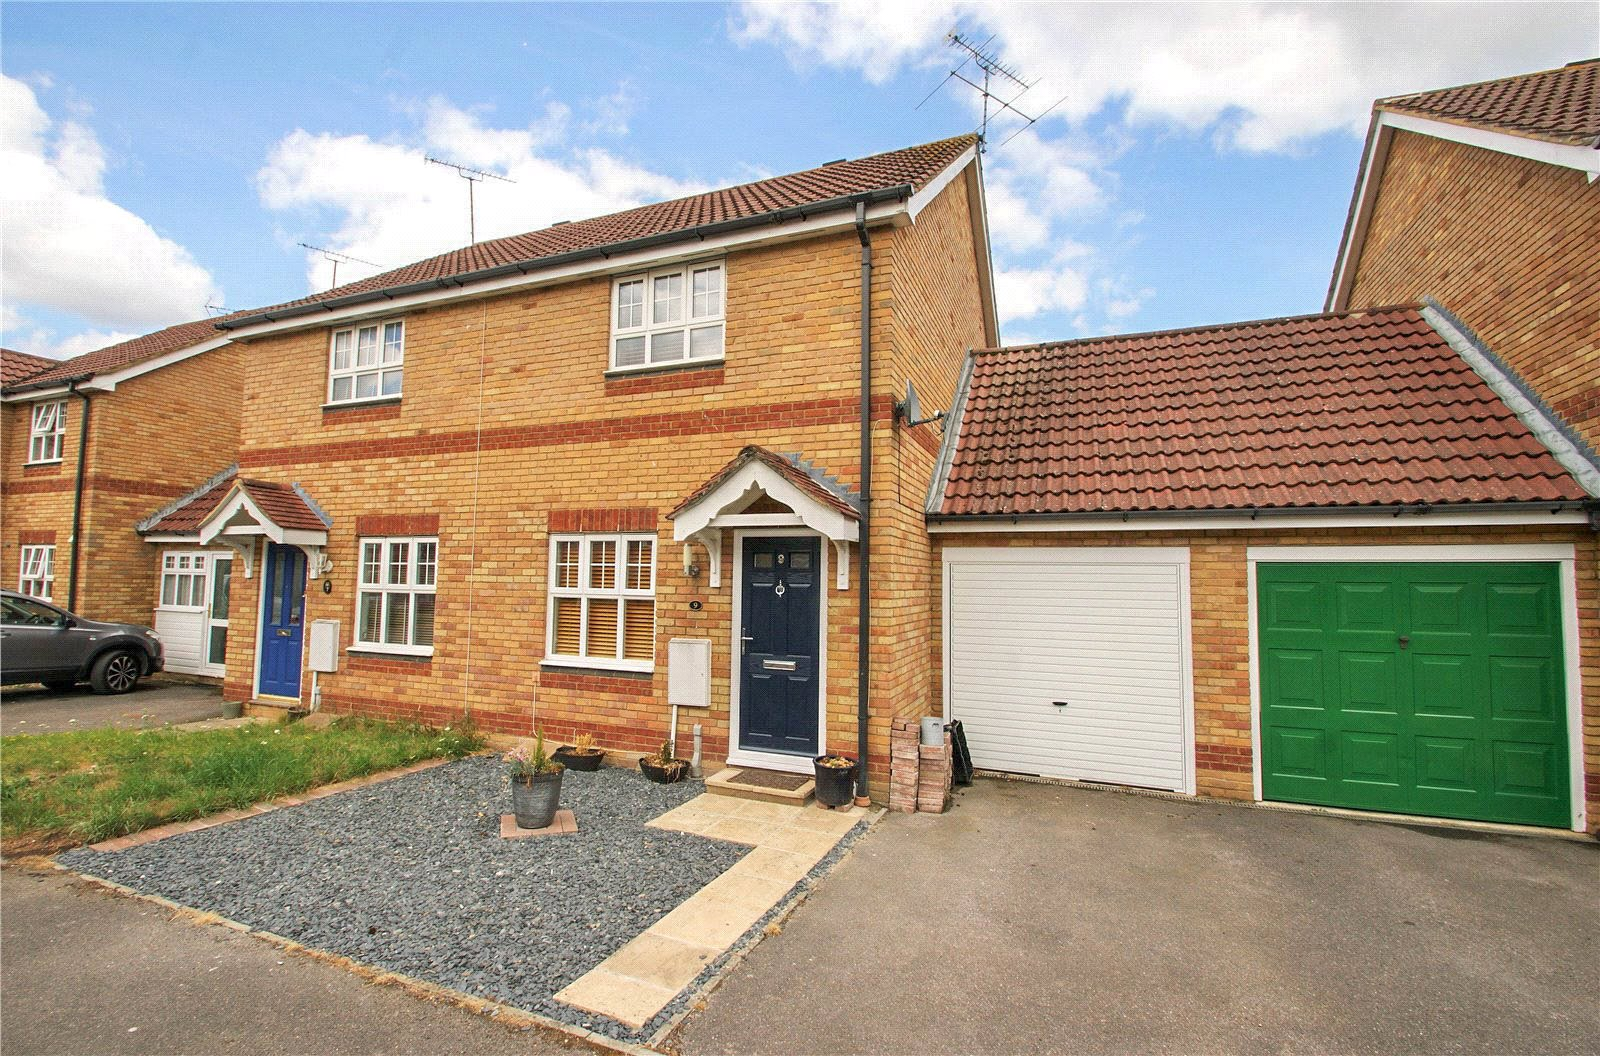 2 Bedrooms Semi Detached House for sale in Barker Close, Arborfield, Berkshire, RG2